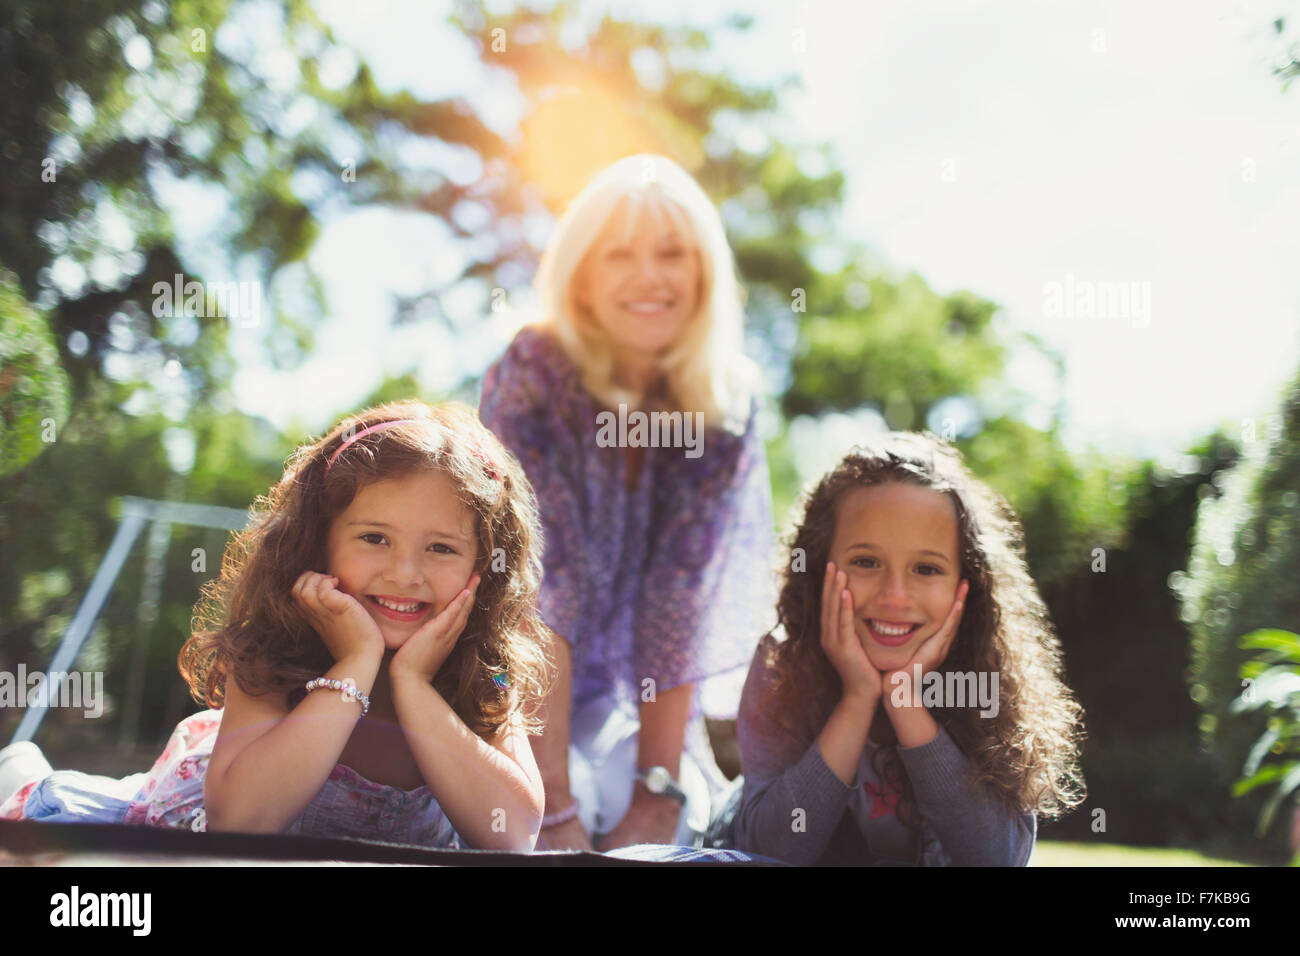 Portrait smiling grandmother with twin granddaughters in park - Stock Image